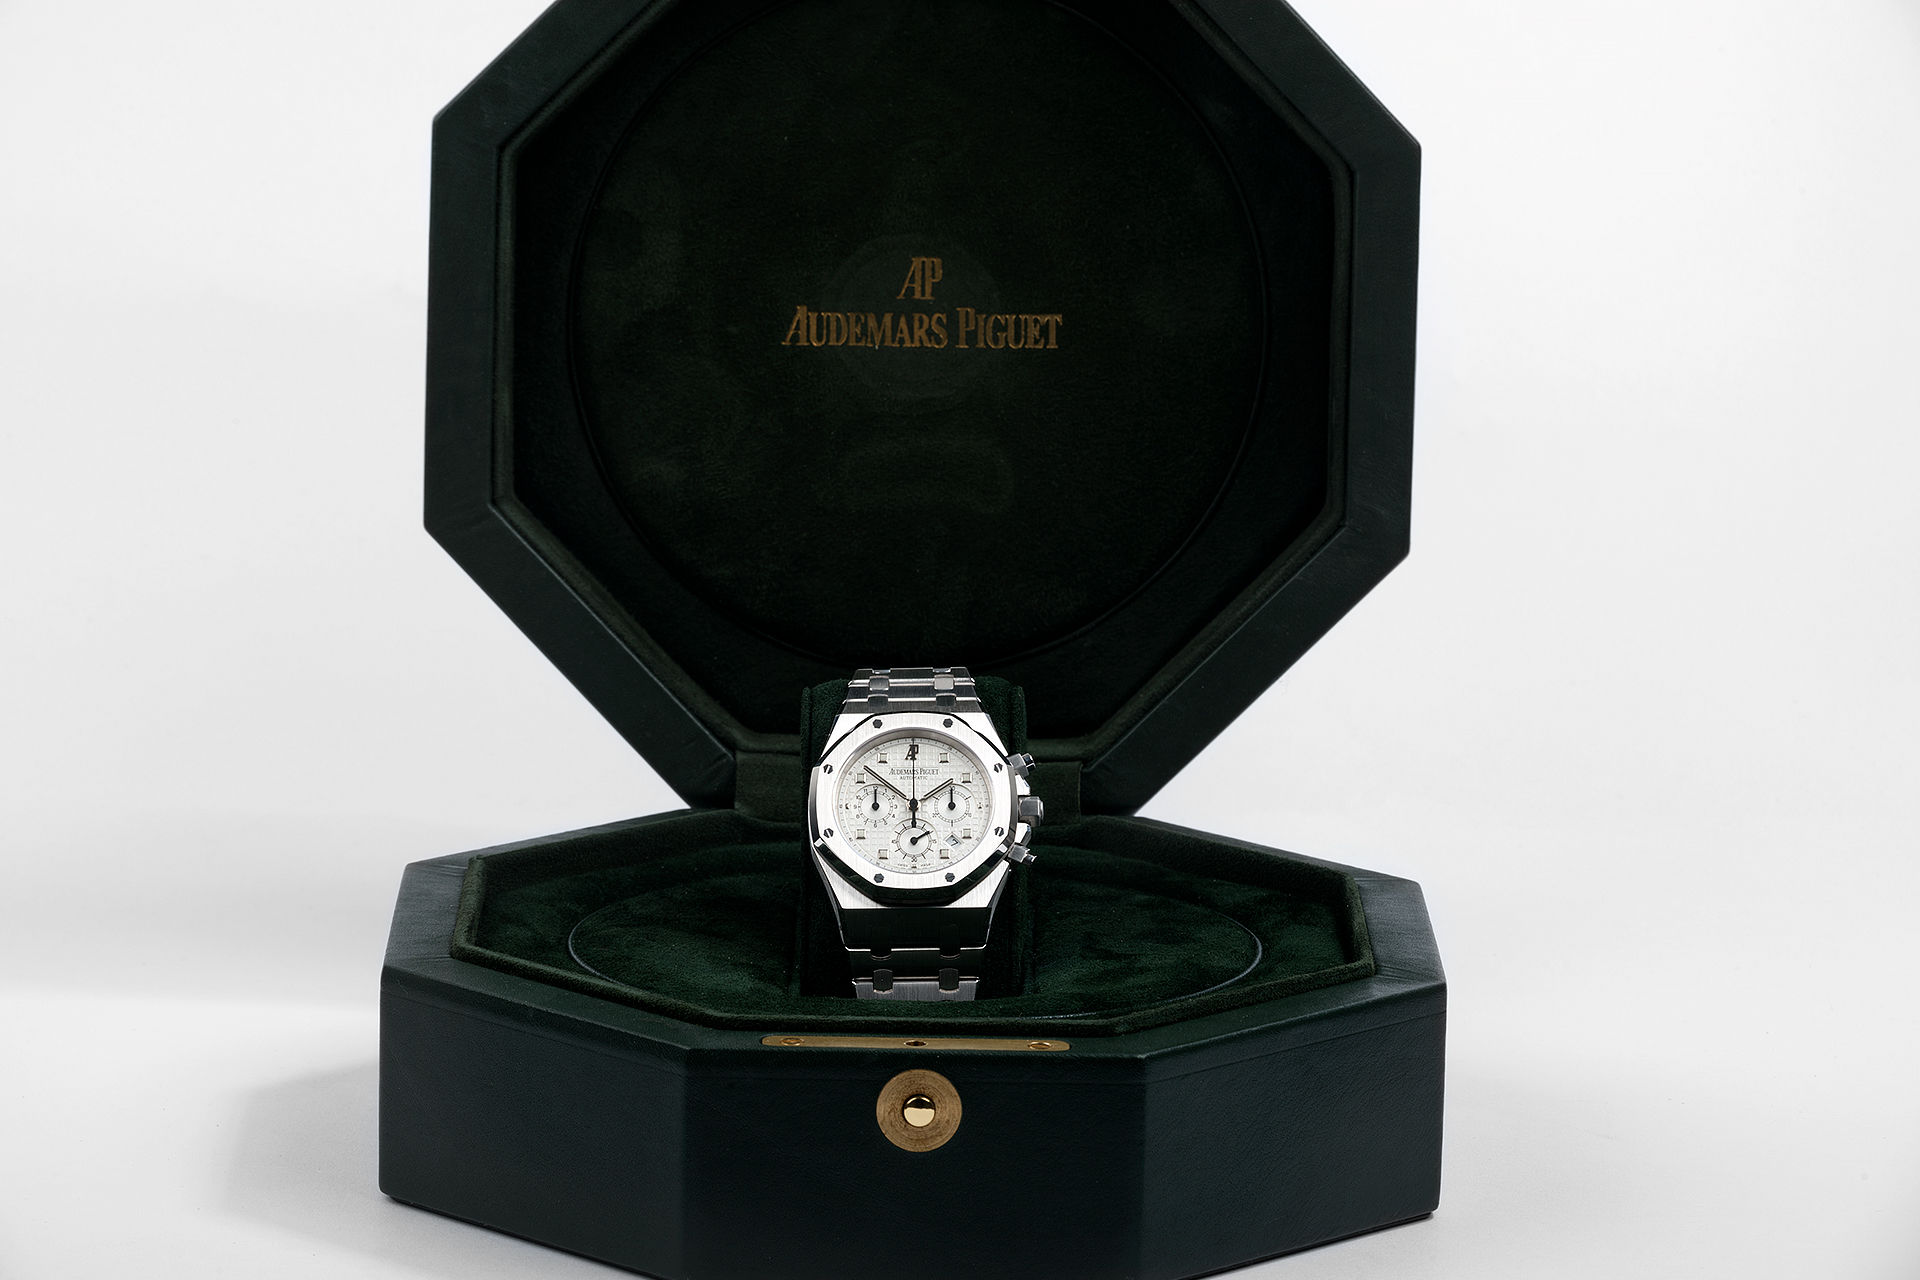 ref 25960BC.OO.1185BC.01 | 18ct White Gold, 2 Year AP Warranty | Audemars Piguet Royal Oak Chronograph